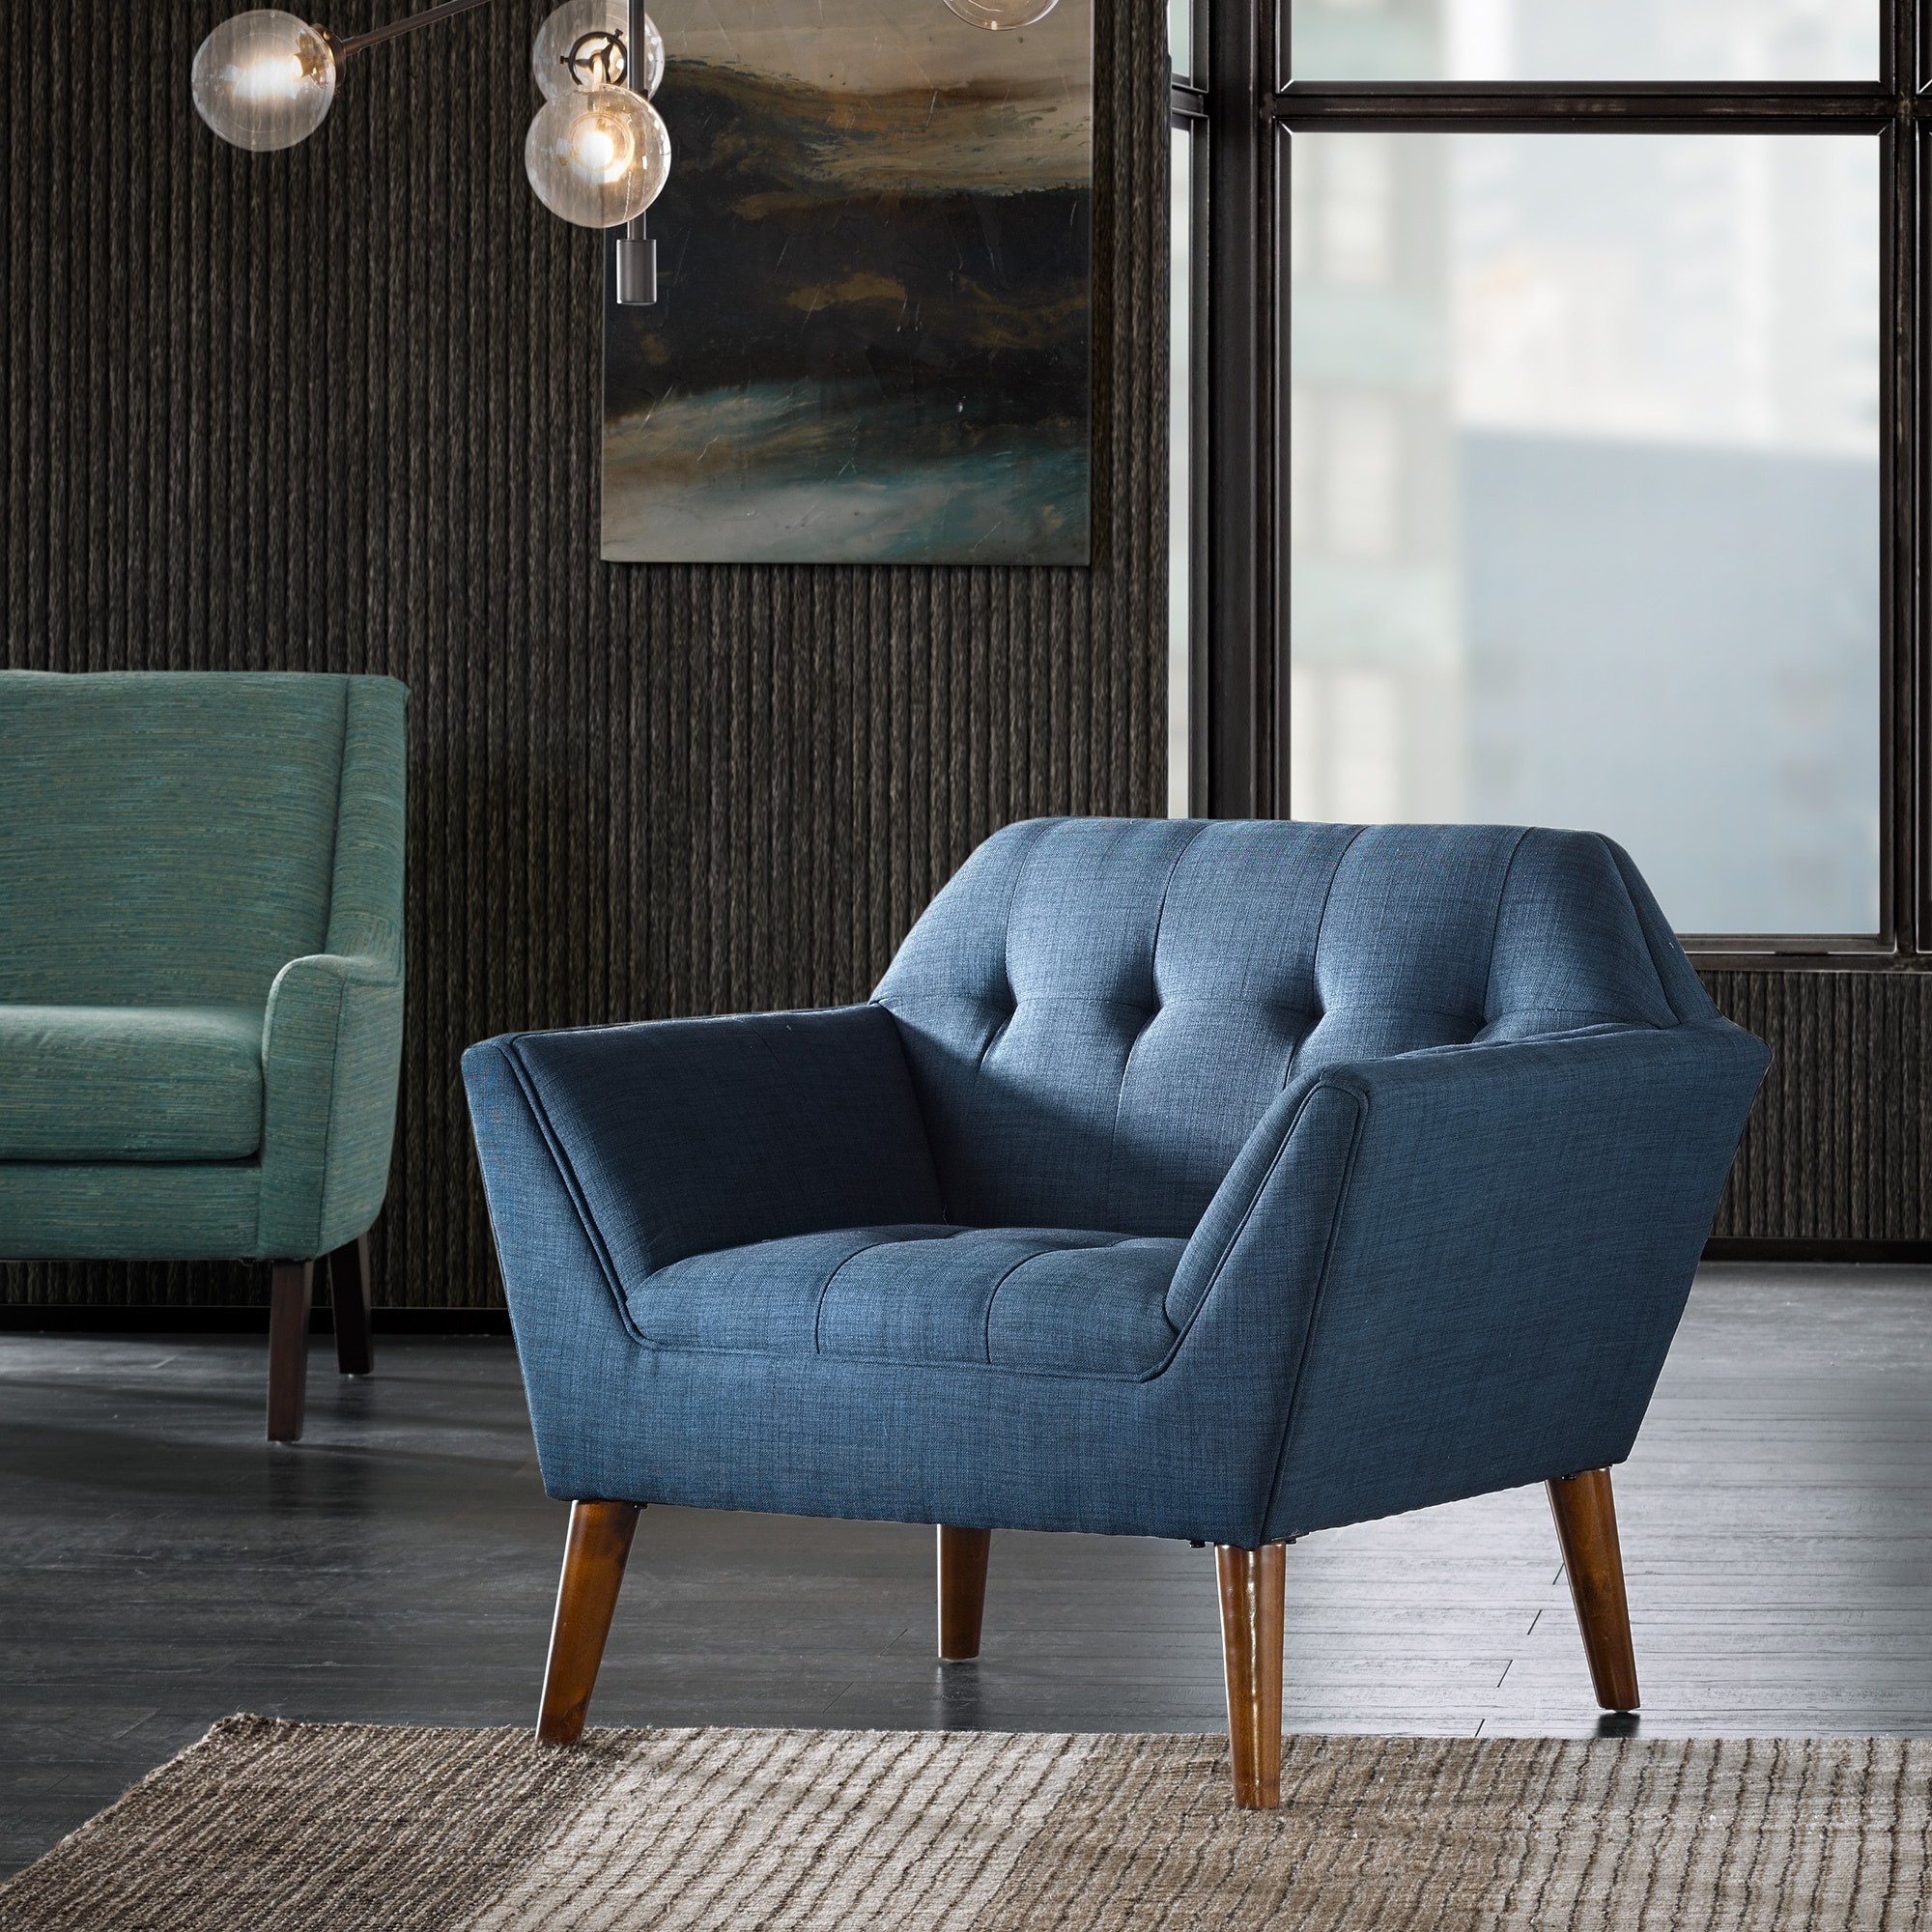 living room lounge chair canada contemporary furniture sets shop carson carrington ljosa ships to